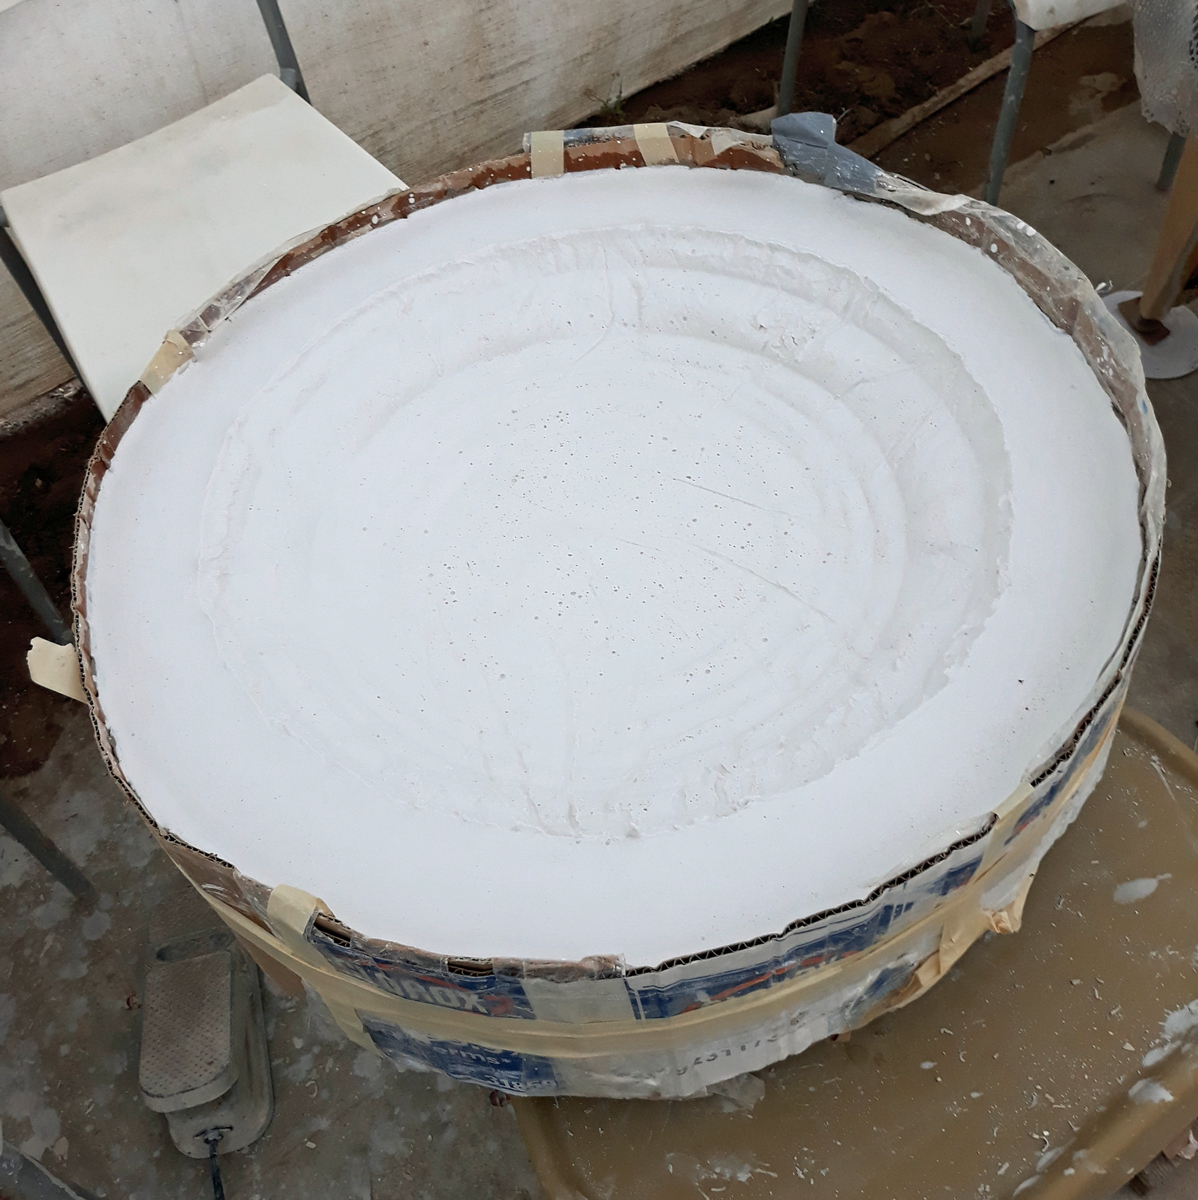 Wet plaster that can be worked with tools